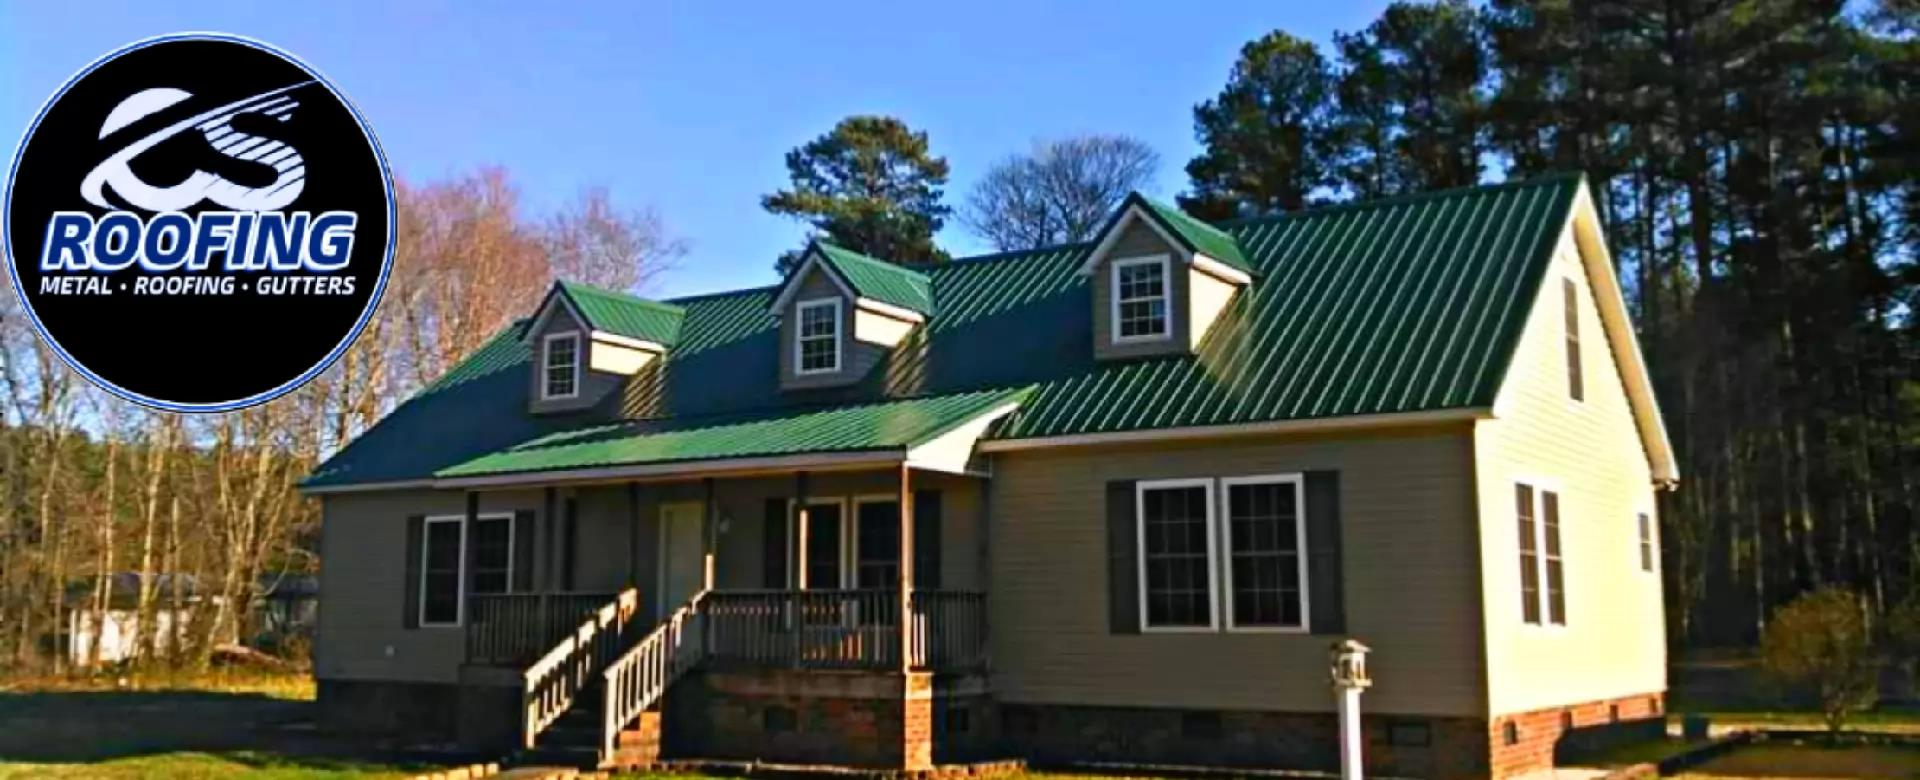 CS Roofing llc